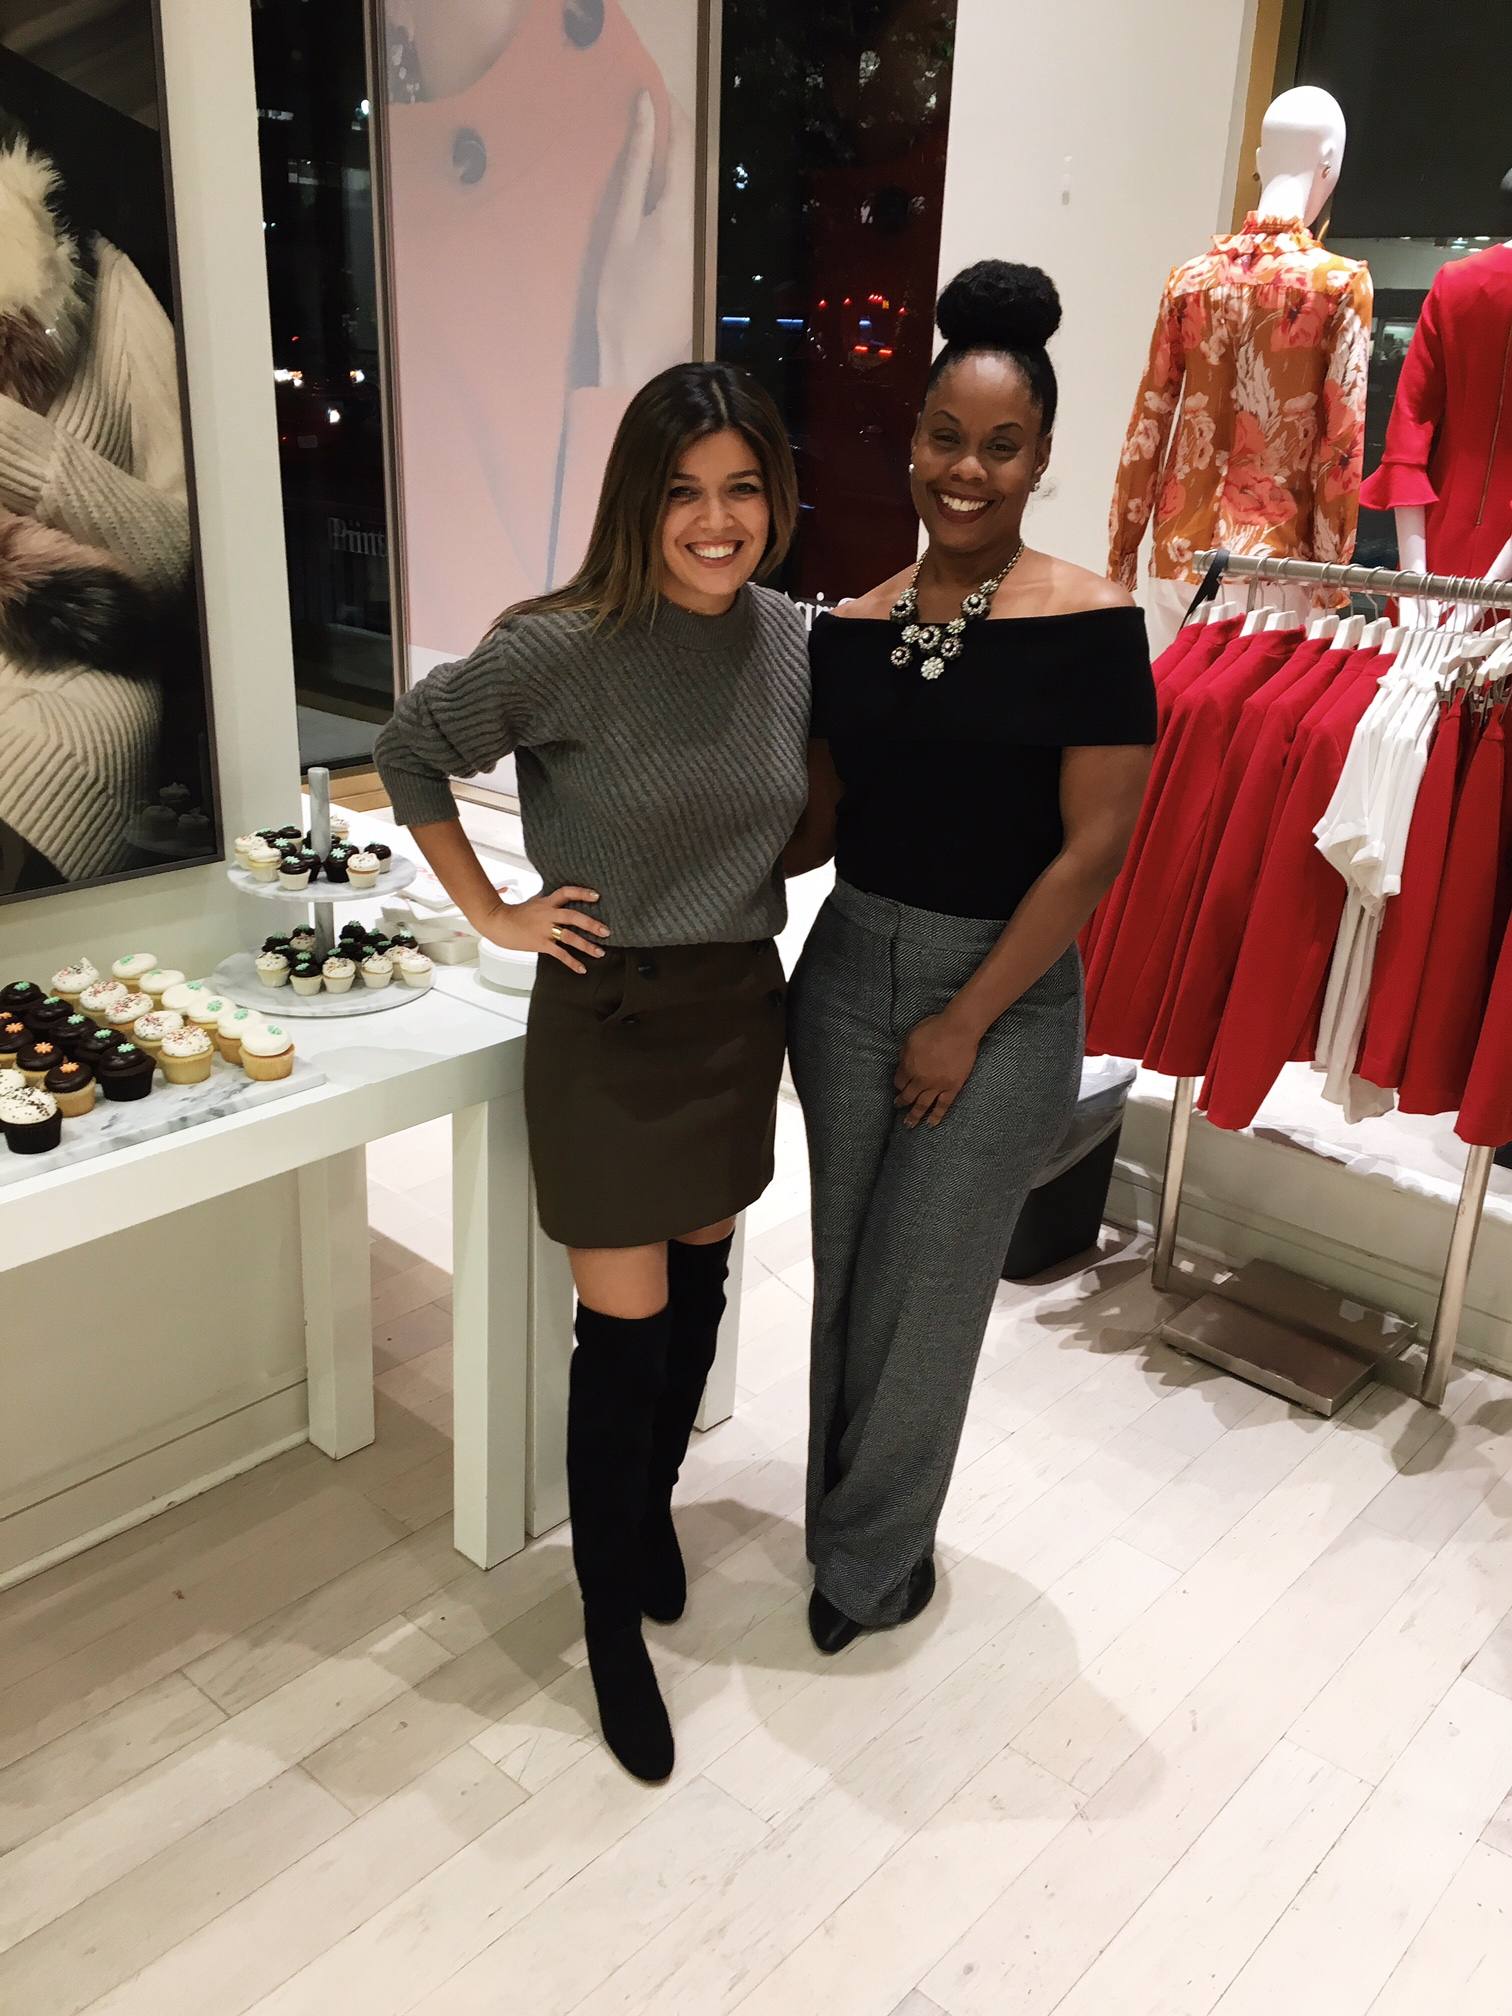 Blogger Sara Azani of Style MBA attends an Ann Taylor event in Washington DC and wears an Ann Taylor Stitched Cashmere Sweater, Ann Taylor Button Fron A-Line Skirt, Ann Taylor Anna Marie Heeled Suede Boots, and Ann Taylor boardwalk Sunglasses.